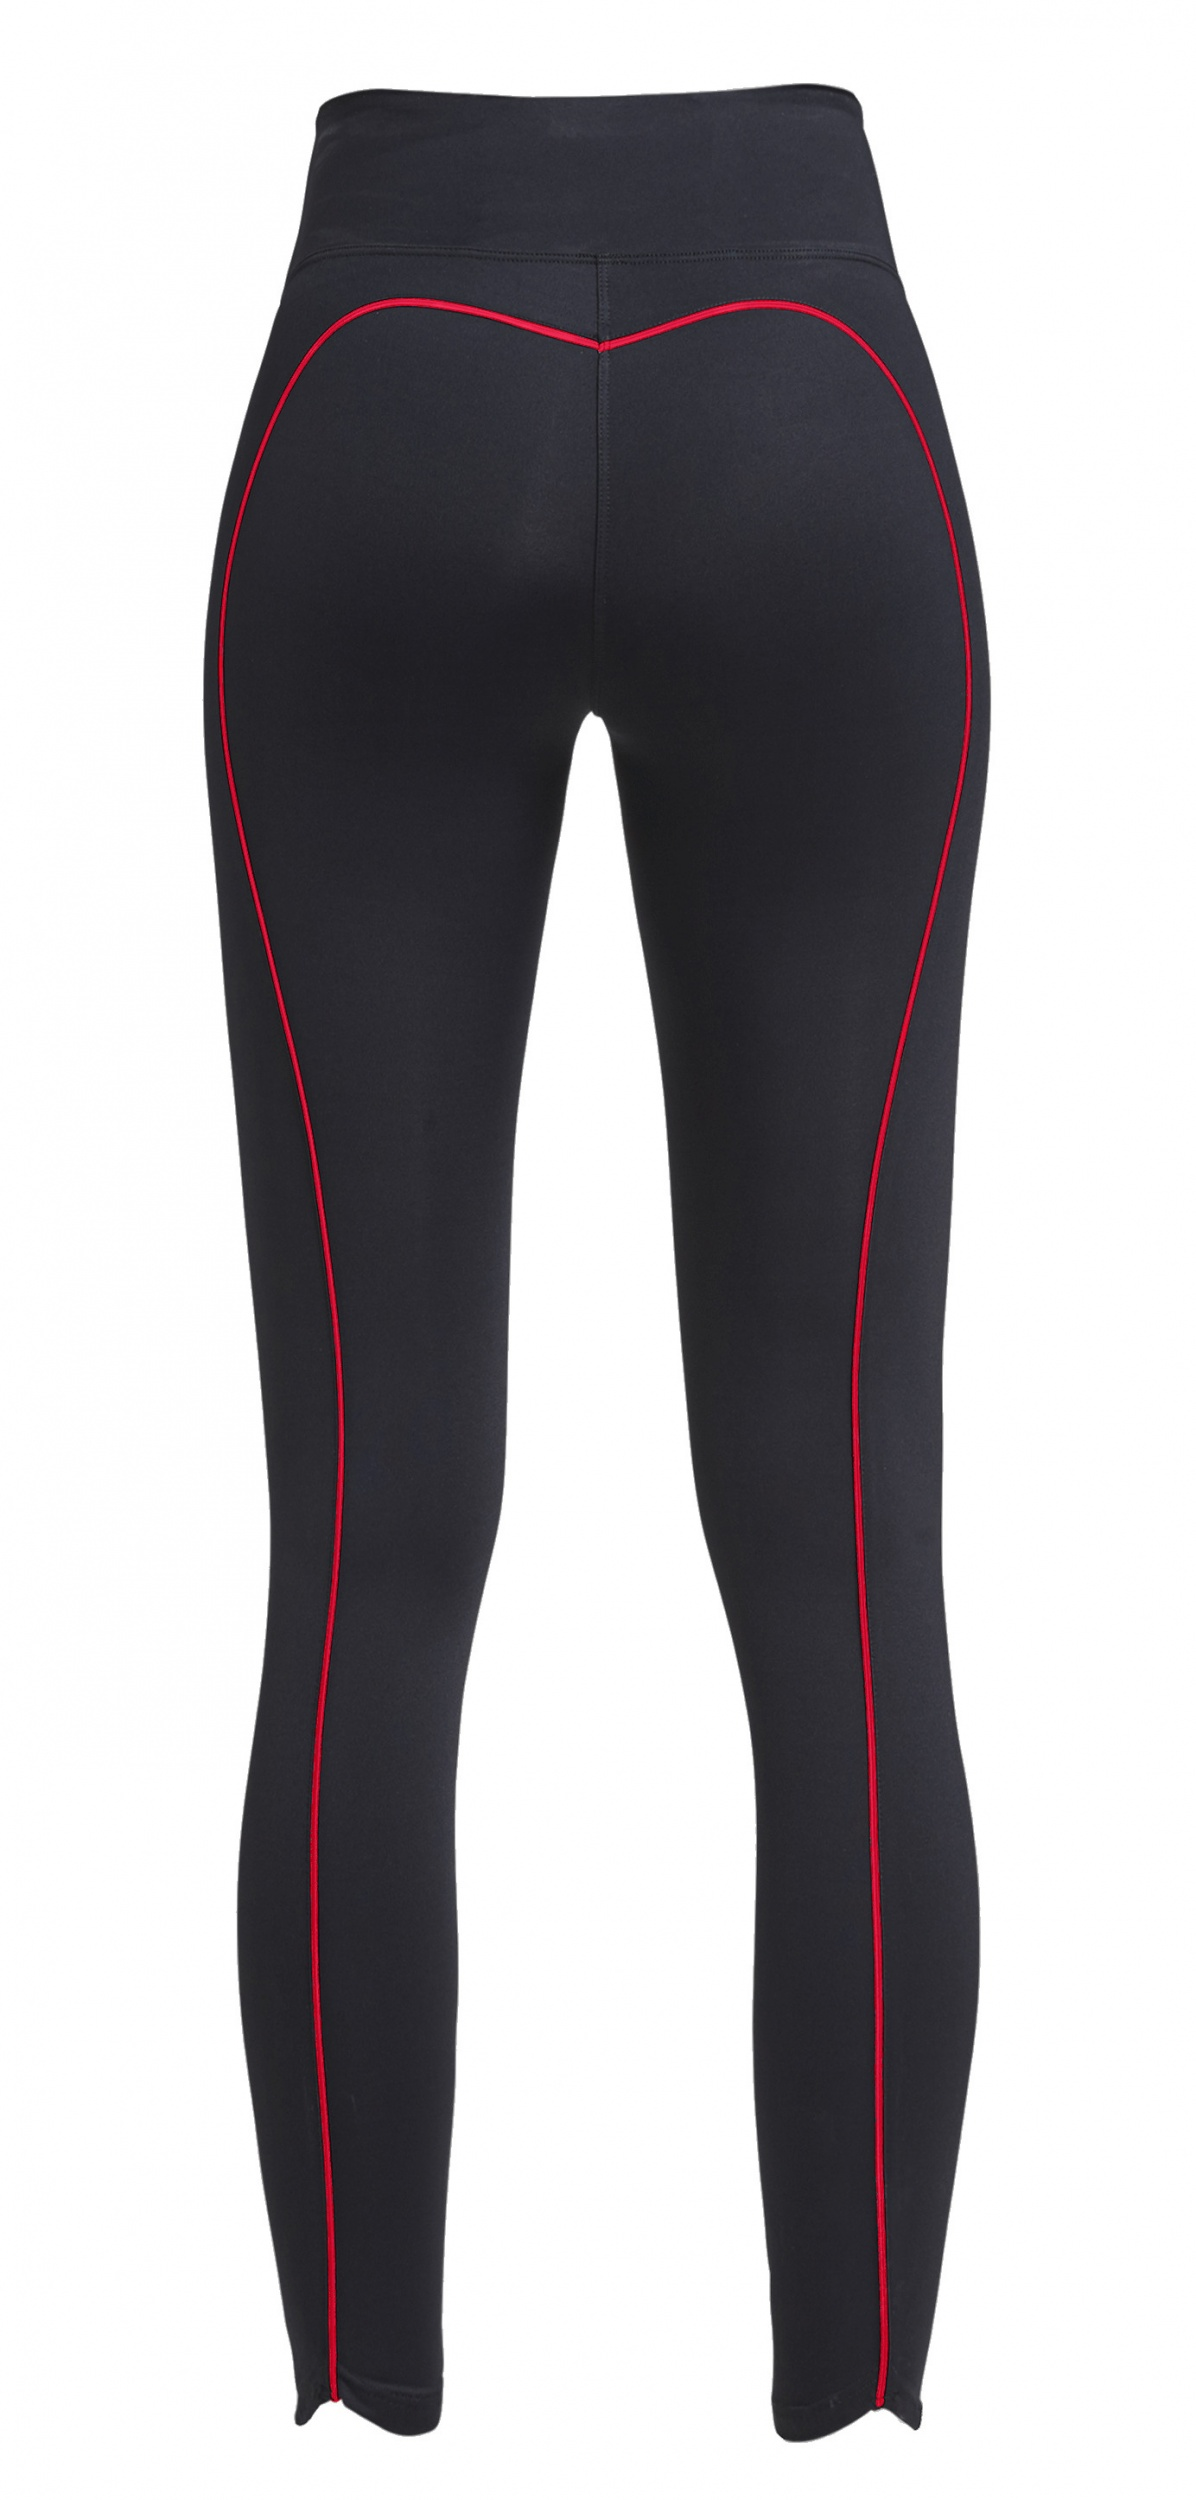 Shaping Sportlegging.Rohnisch Sport Laying Shape Sleek Ladies Black Red Internet